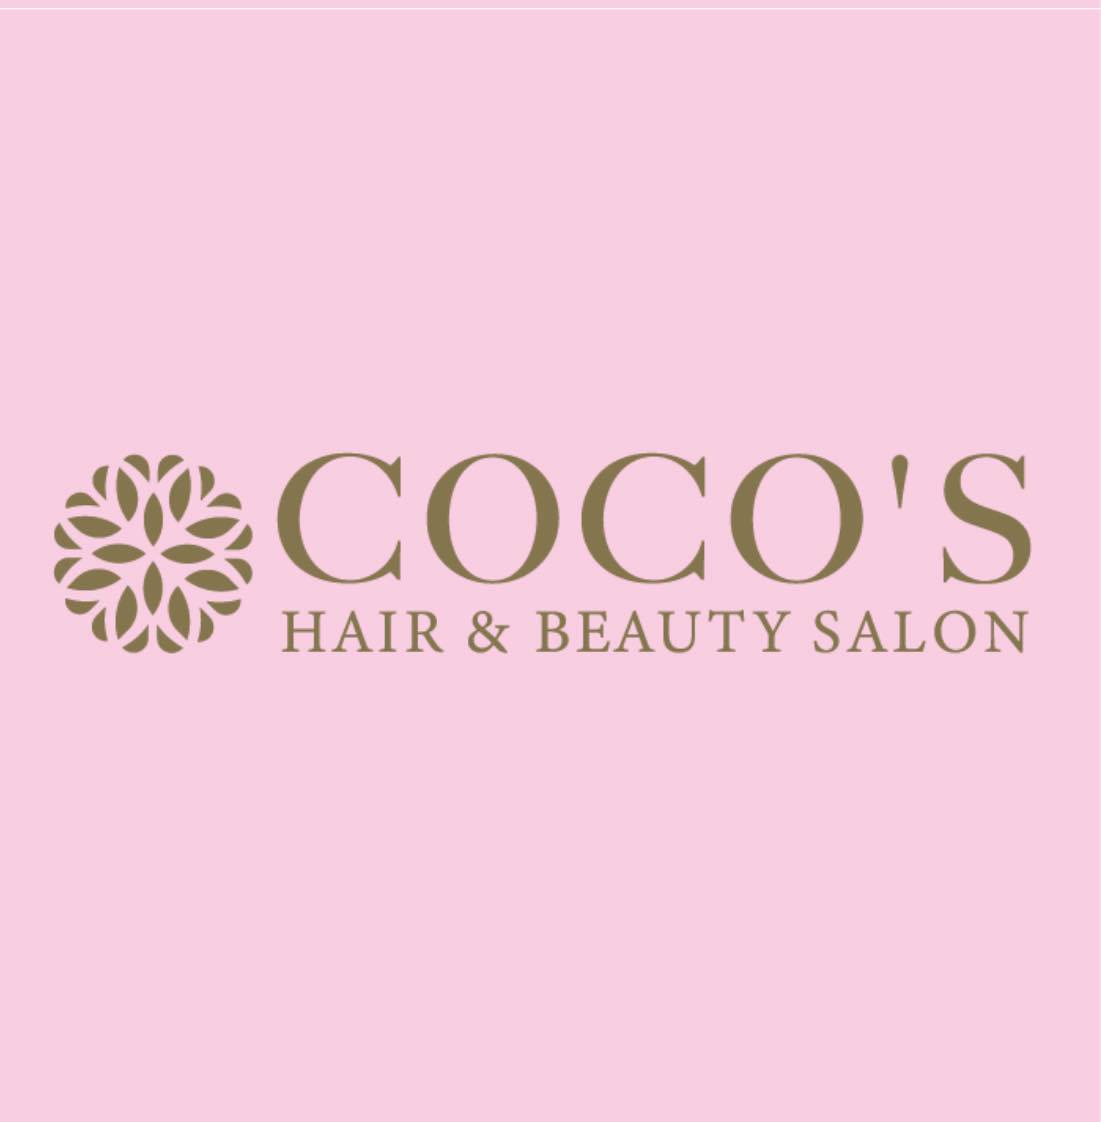 Coco's Hair & Beauty Salon